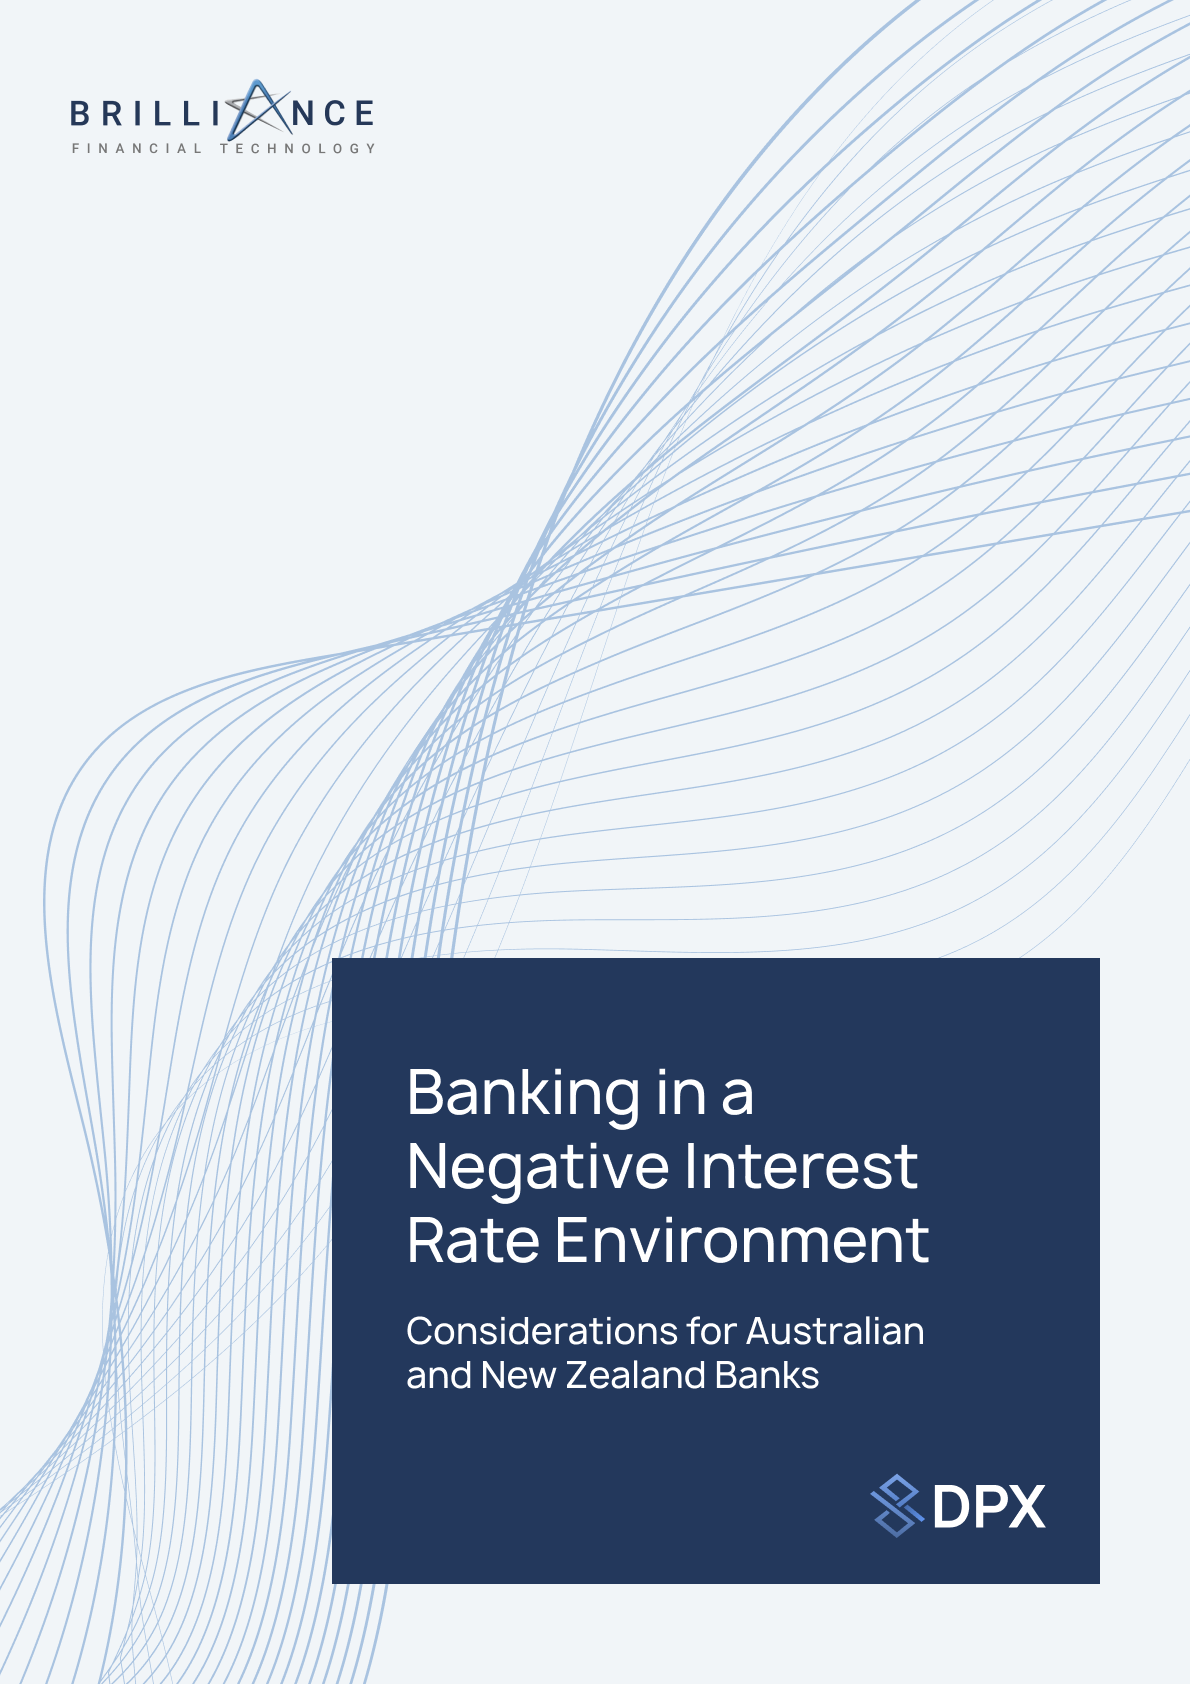 Banking in a Negative Interest Rate Environment White Paper